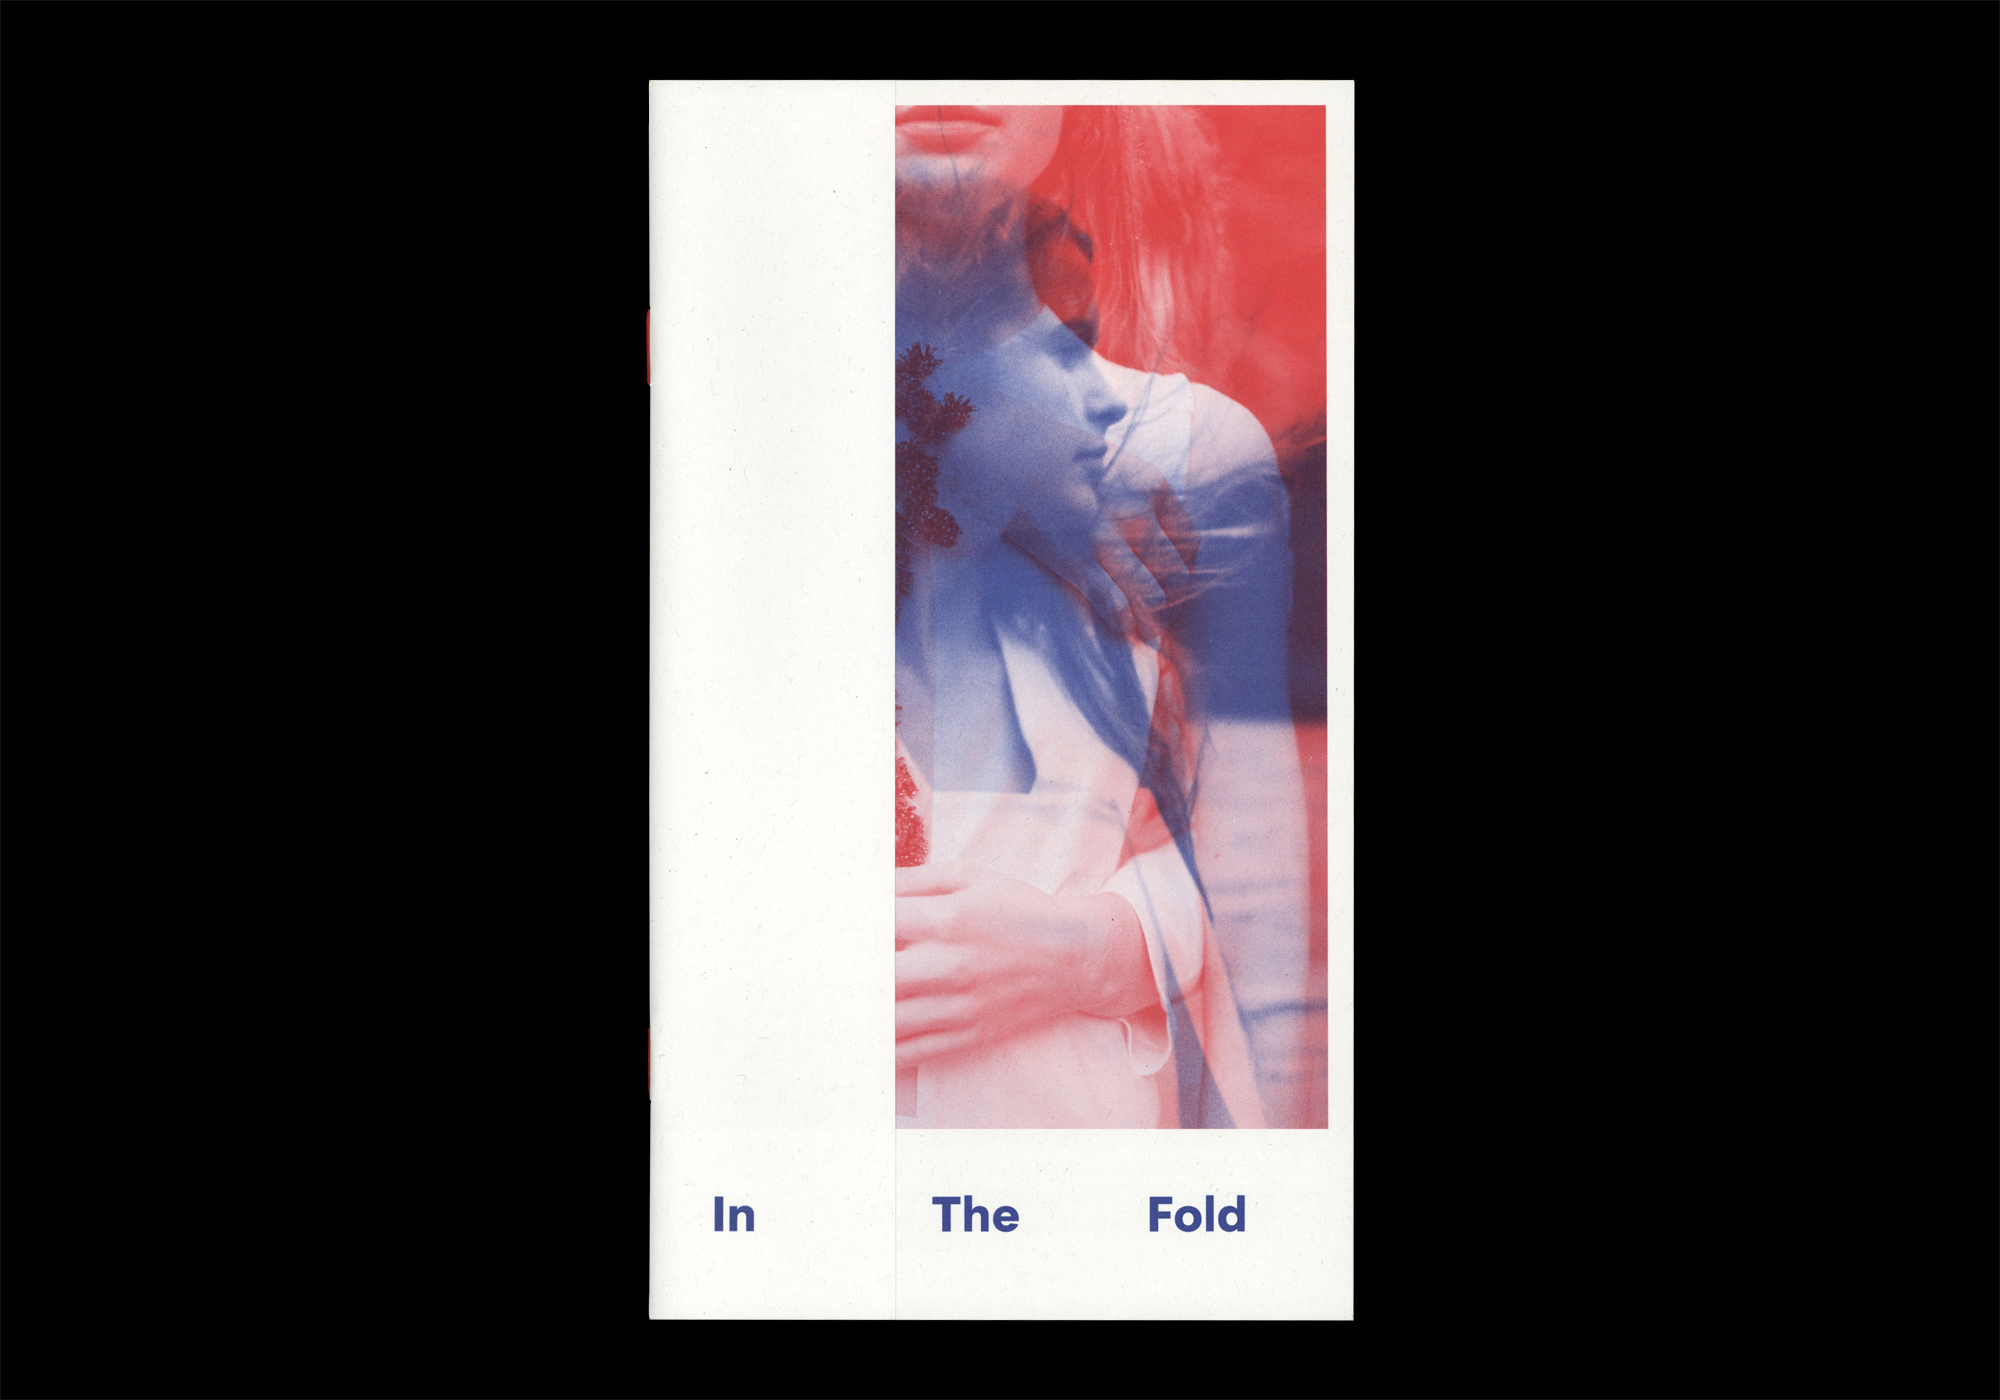 Cover image: In The Fold (2015)